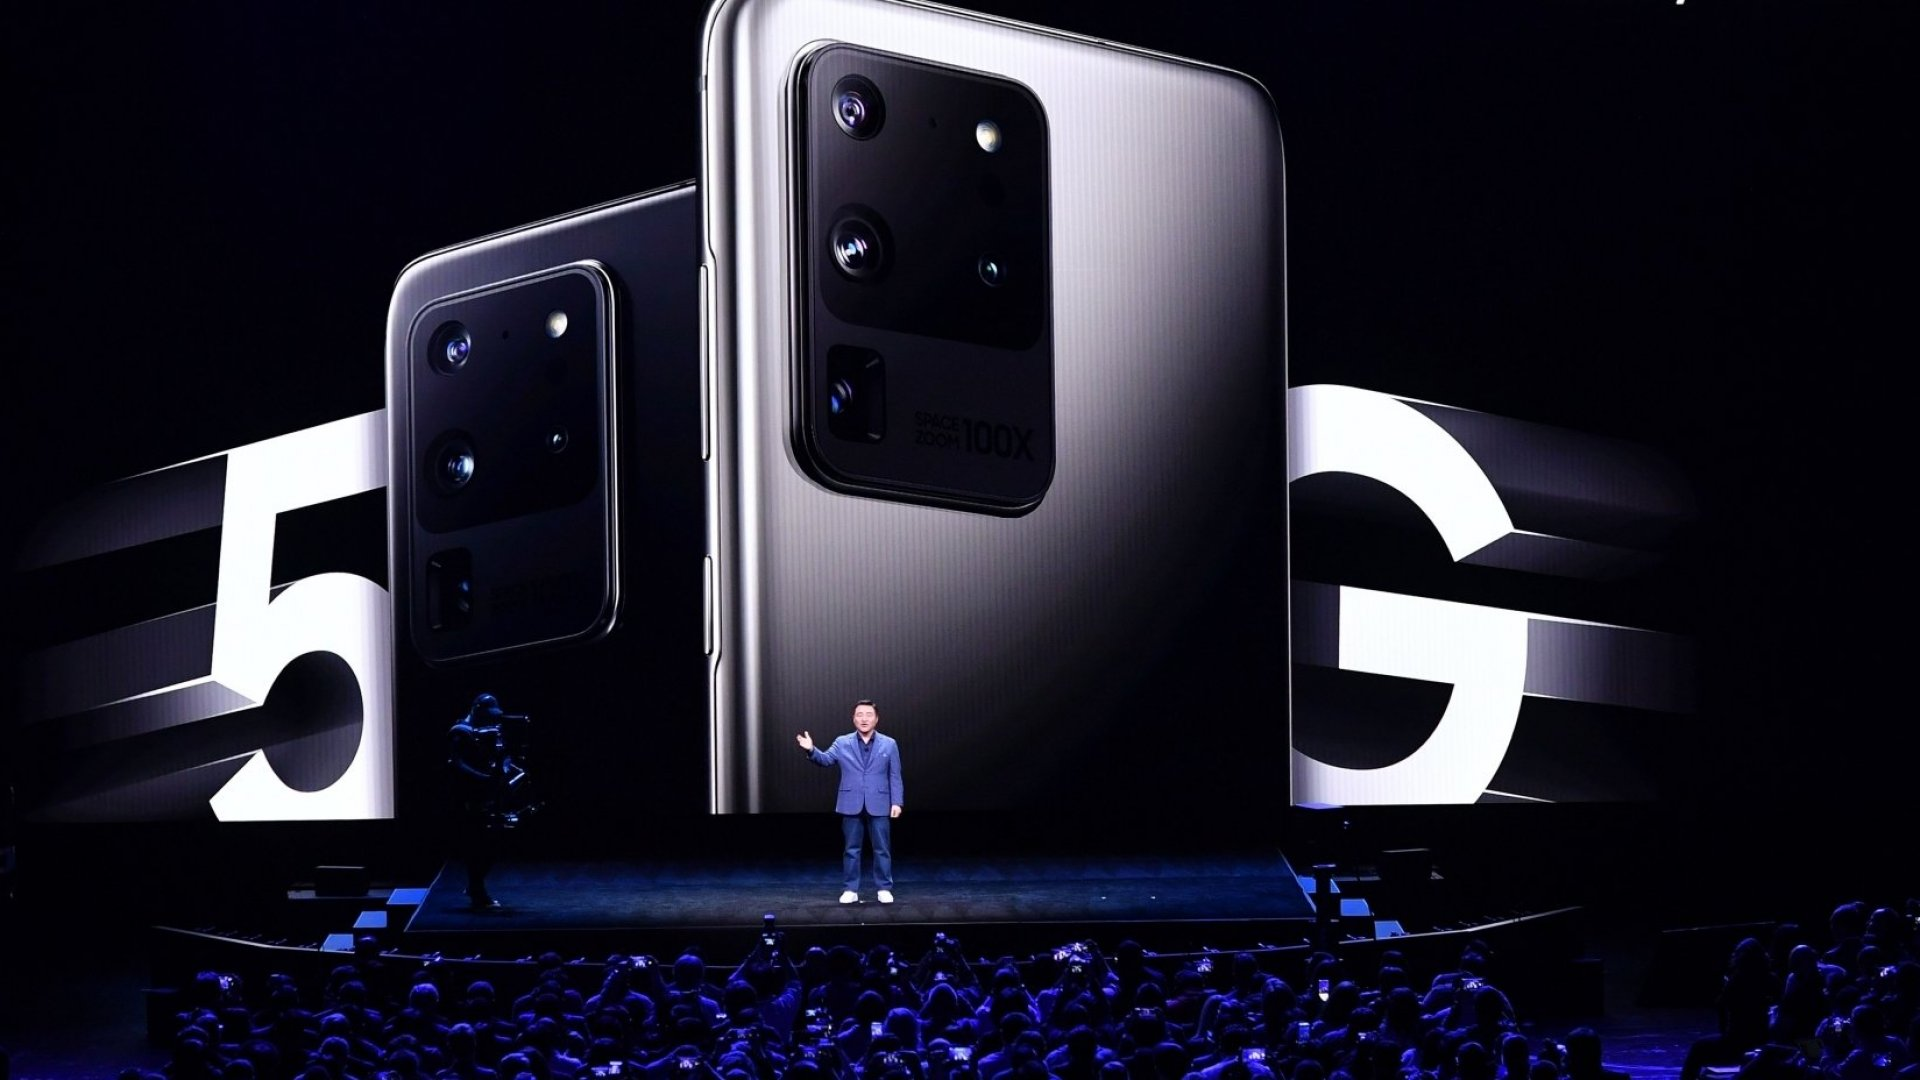 Samsung Just Launched the Galaxy S20, and 5G Isn't Even the Biggest New Feature